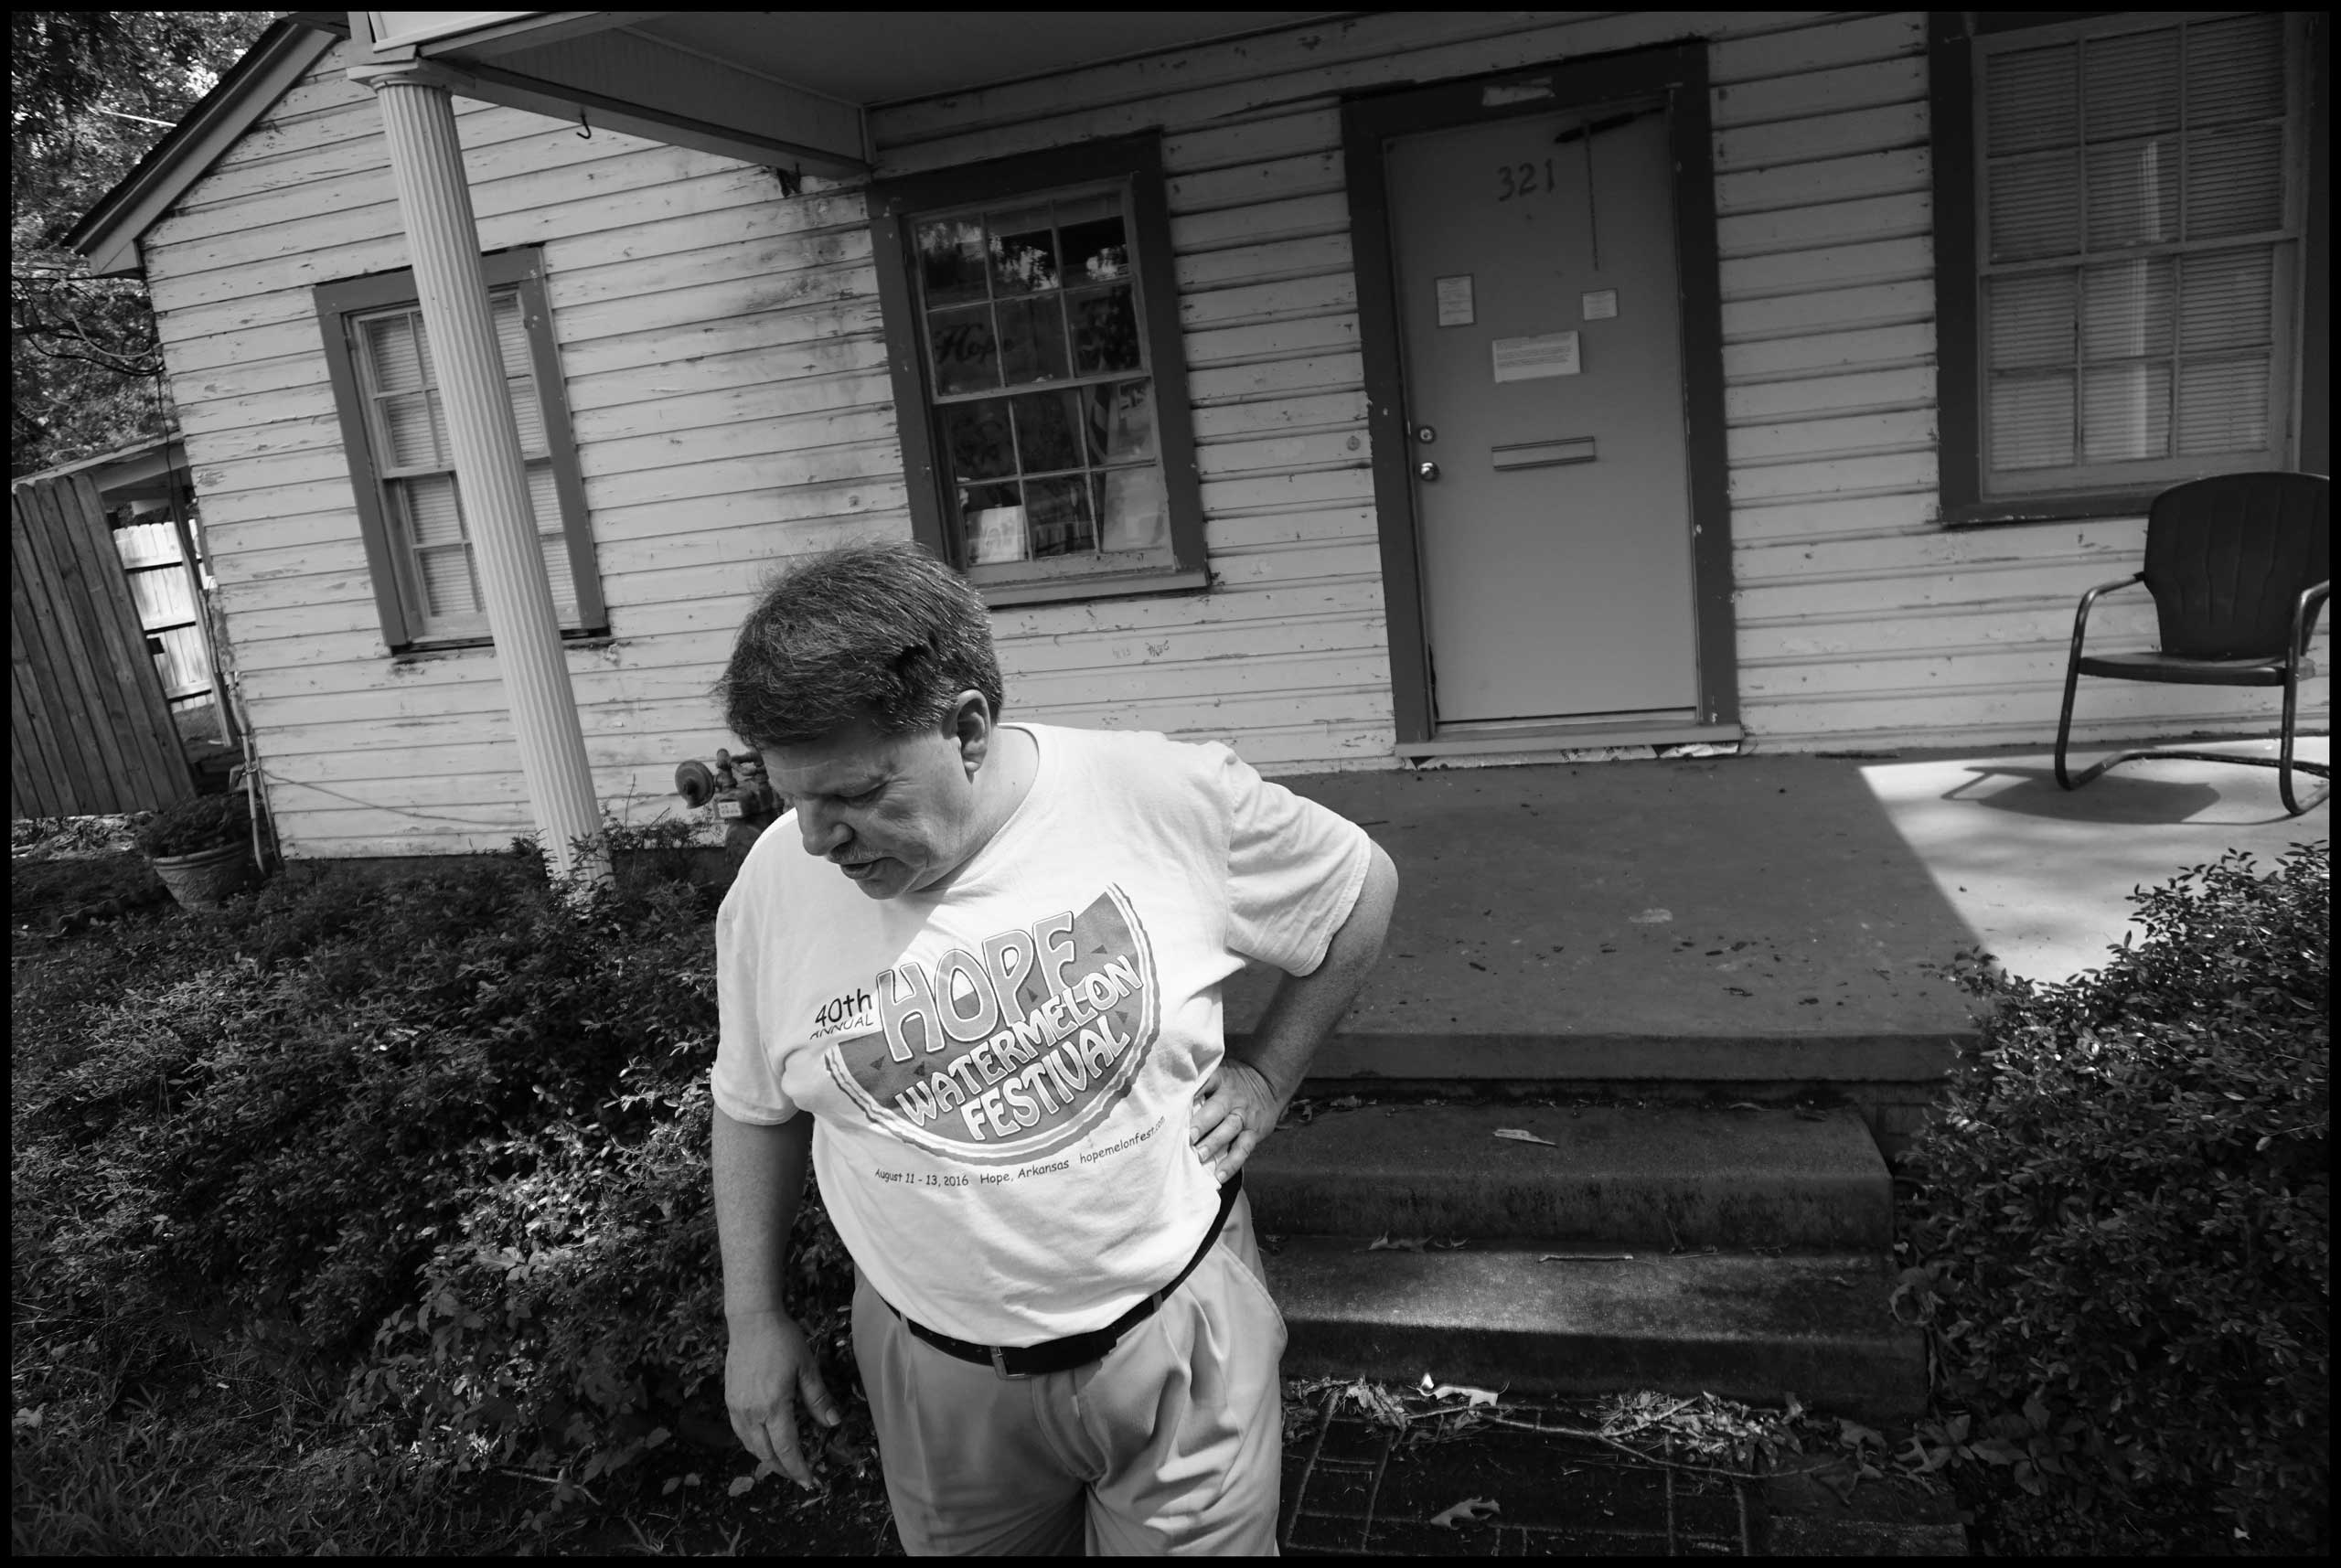 The house that Bill Clinton lived in later in his life, at 321 East 13th Street, Hope, Ark. 2016.